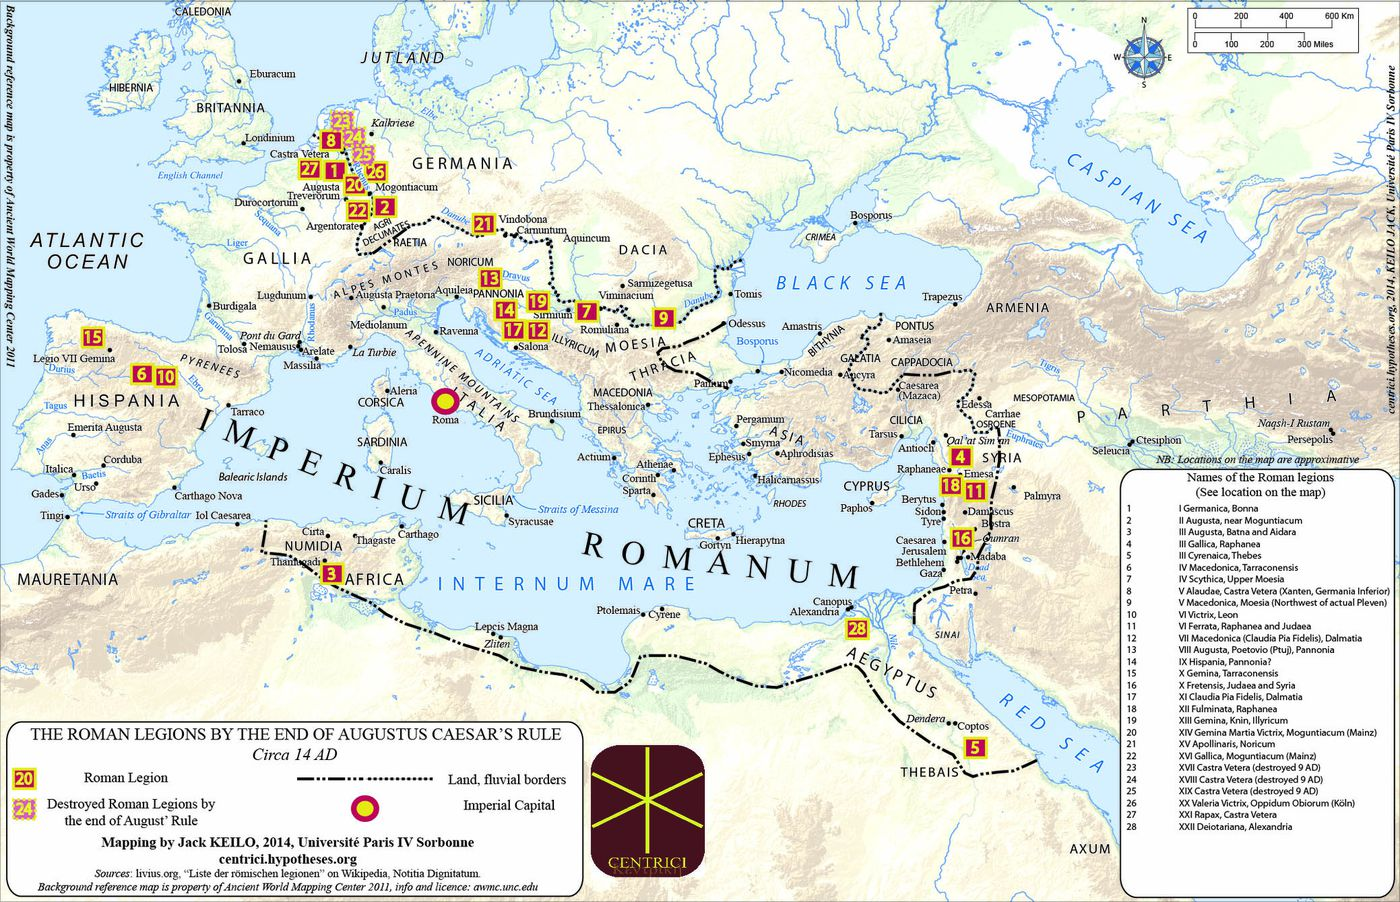 The Roman Empire, explained in 40 maps - Vox on map of jefferson city mo, map of boston, map of atlantic city hotels, map of amsterdam city centre, map of atlantic city casinos, map of rome republic, map of new york city streets, map of london city, map of center city philadelphia, map of rome italy, map of oklahoma city area, map of chesapeake virginia, map of elizabeth city nc, map of baltimore city, map of new york city boroughs, map of every oklahoma towns, map of manila city philippines, map of cebu city philippines, map of kansas city mo, map of east texas,